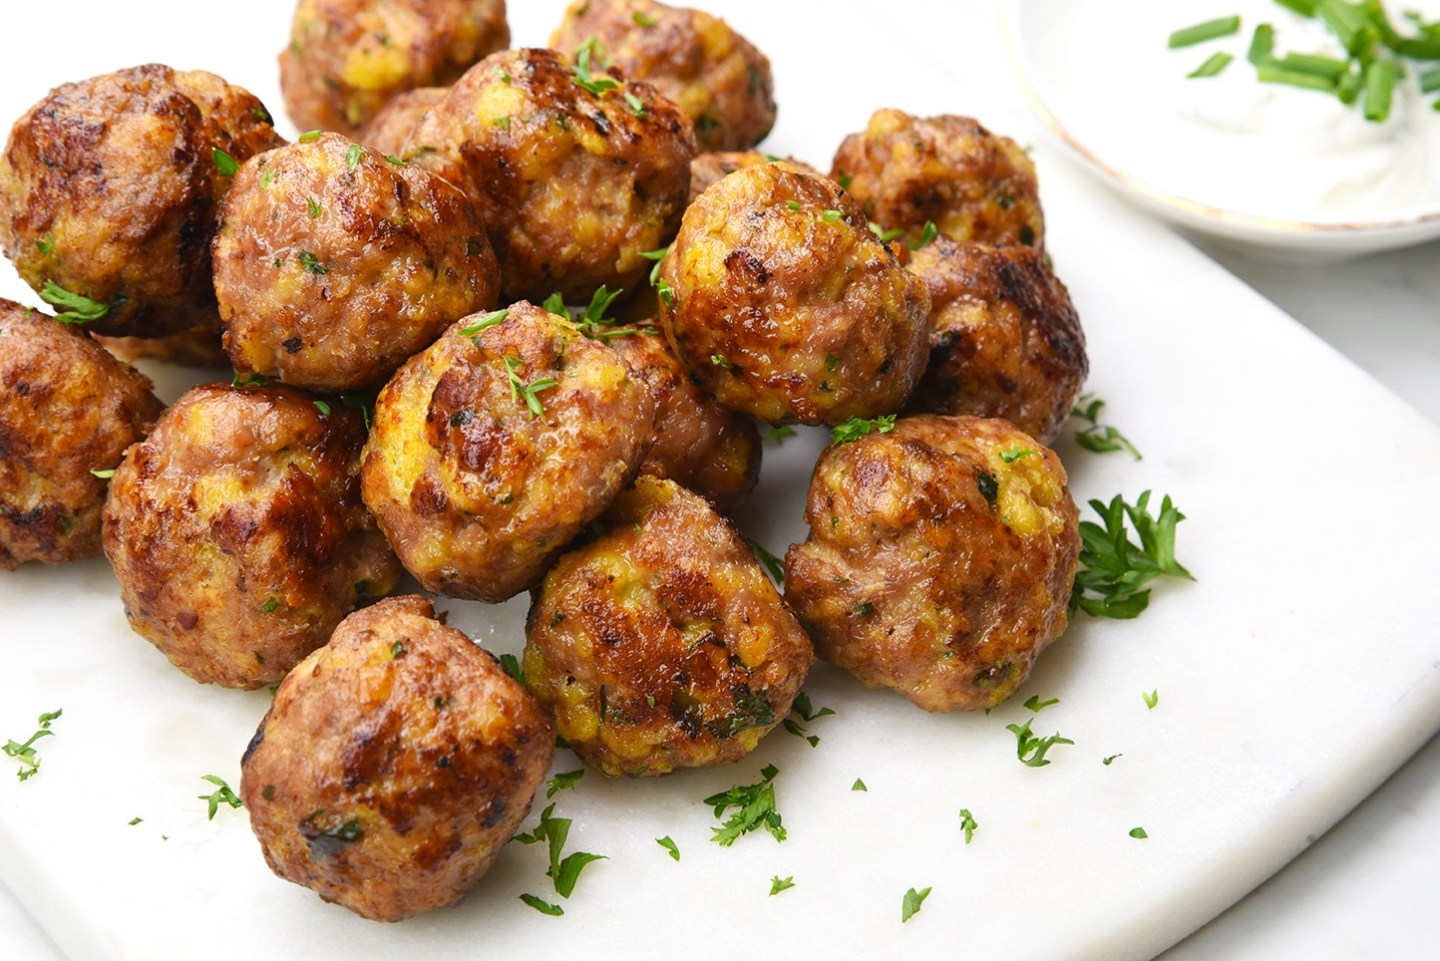 5 Ways to Use Your Easy Turkey Meatball Meal Starters Every Day + $75 Visa Gift Card Giveaway